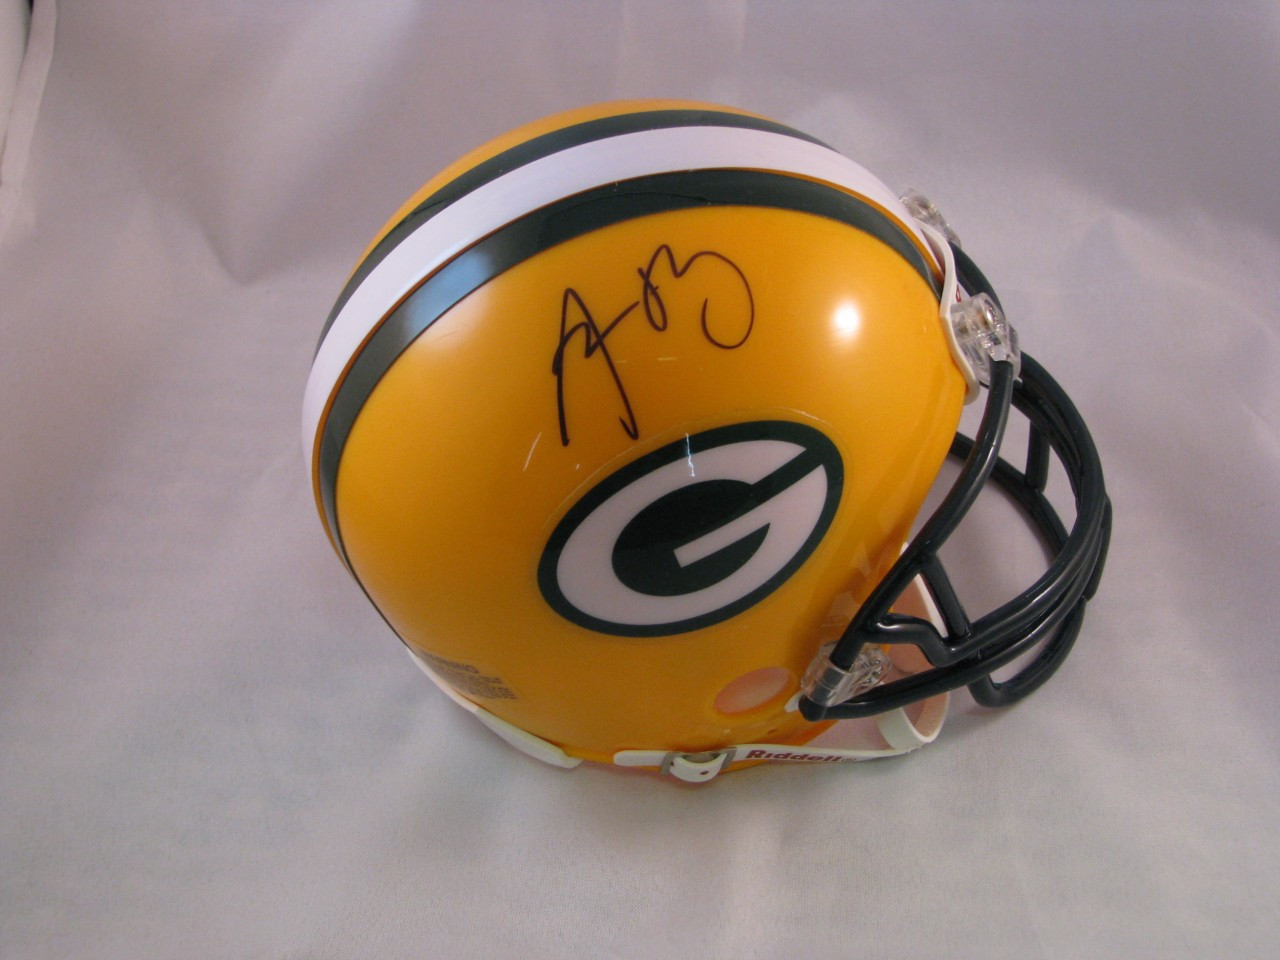 6fea13987 ... Aaron Rodgers Authentic Autographed Green Bay Packers Mini Helmet.  Image 1. Loading zoom